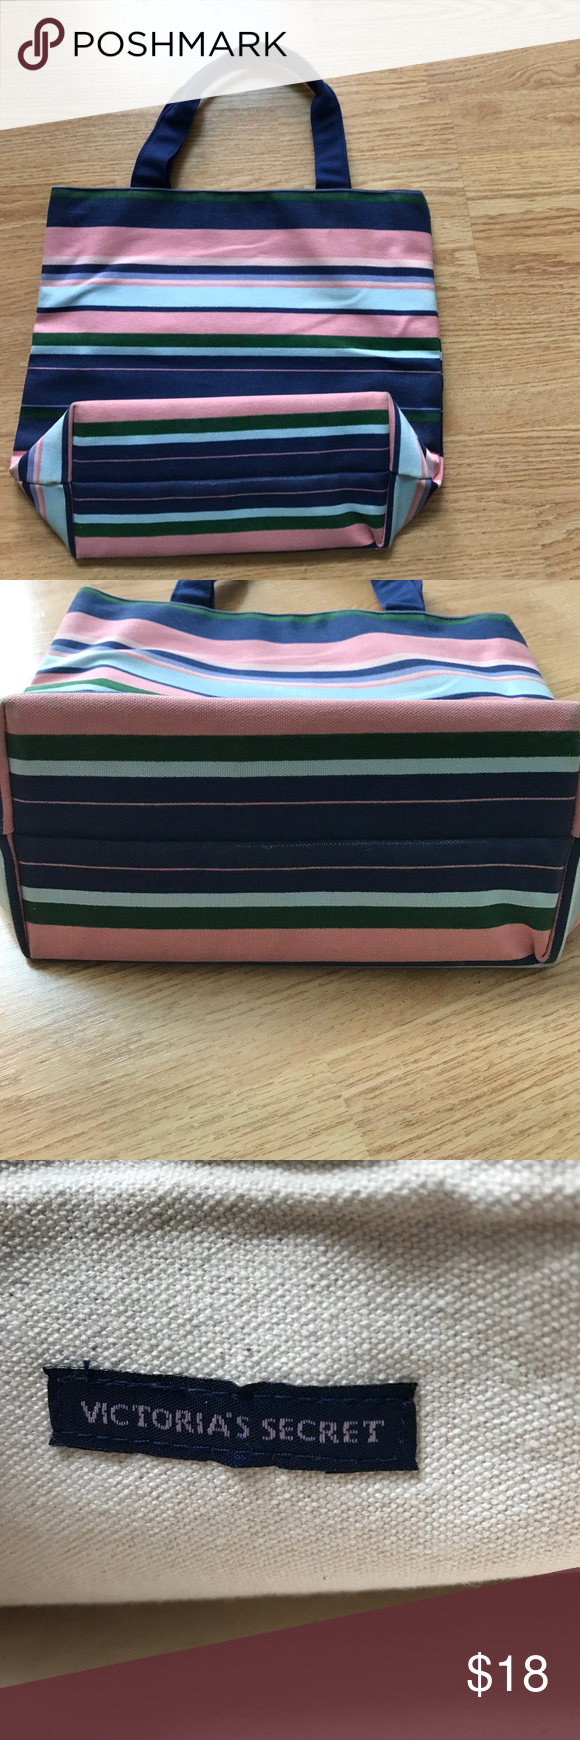 Victoria's Secret preppy striped bag pink blue Thick canvas tote. Navy handles measures 13 across and 11 inches long. Preppy stripes blue, green and pink Victoria's Secret Bags Totes